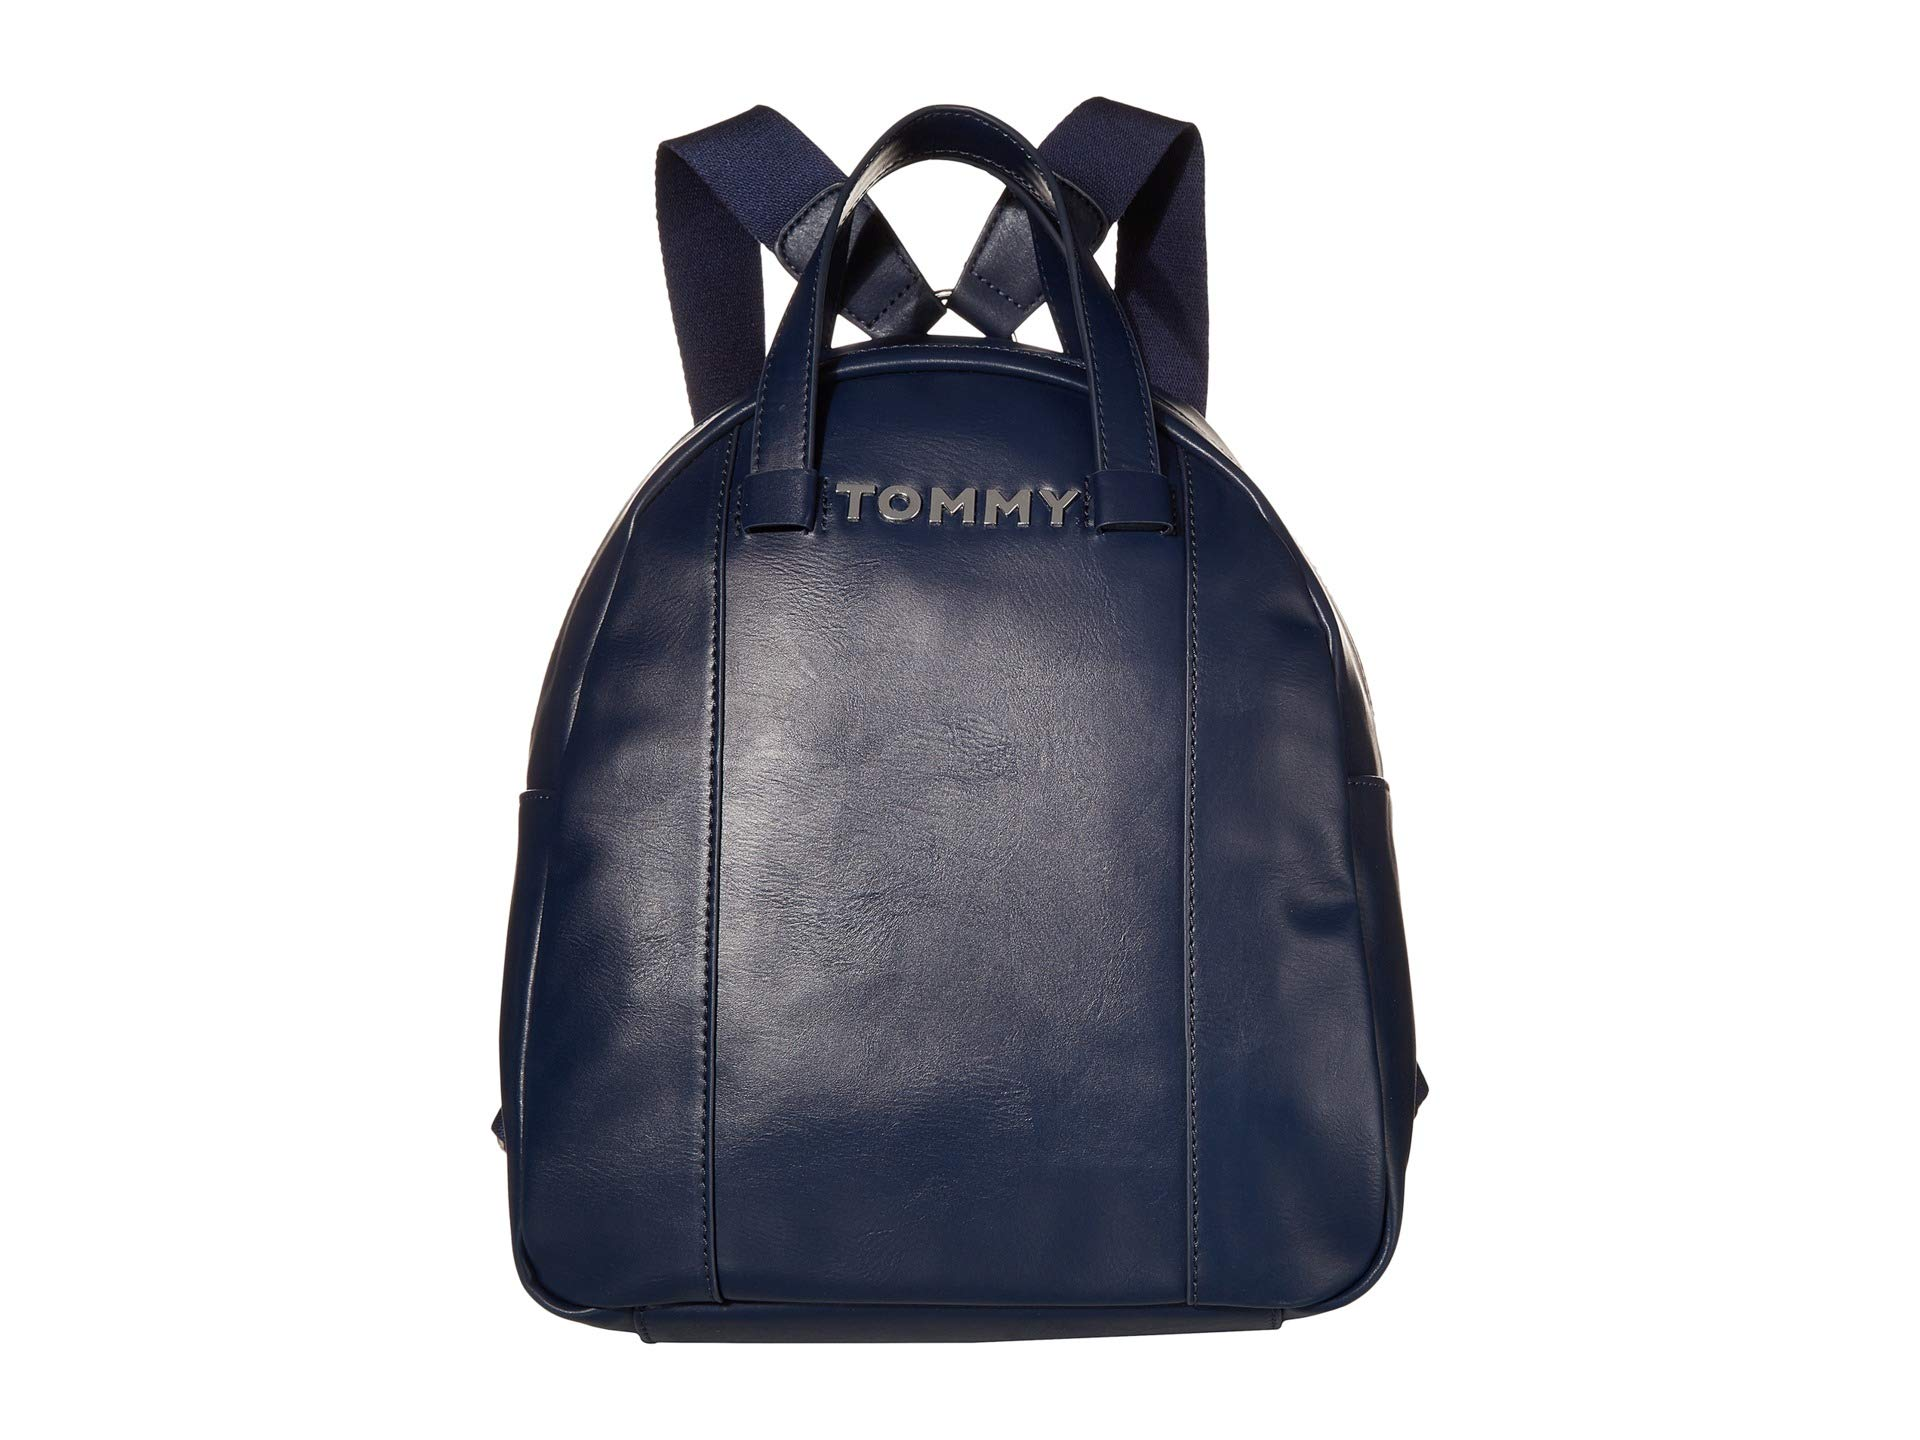 Tommy Hilfiger Tommy Hilfiger Florence 1.5 - Backpack - Smooth PVC